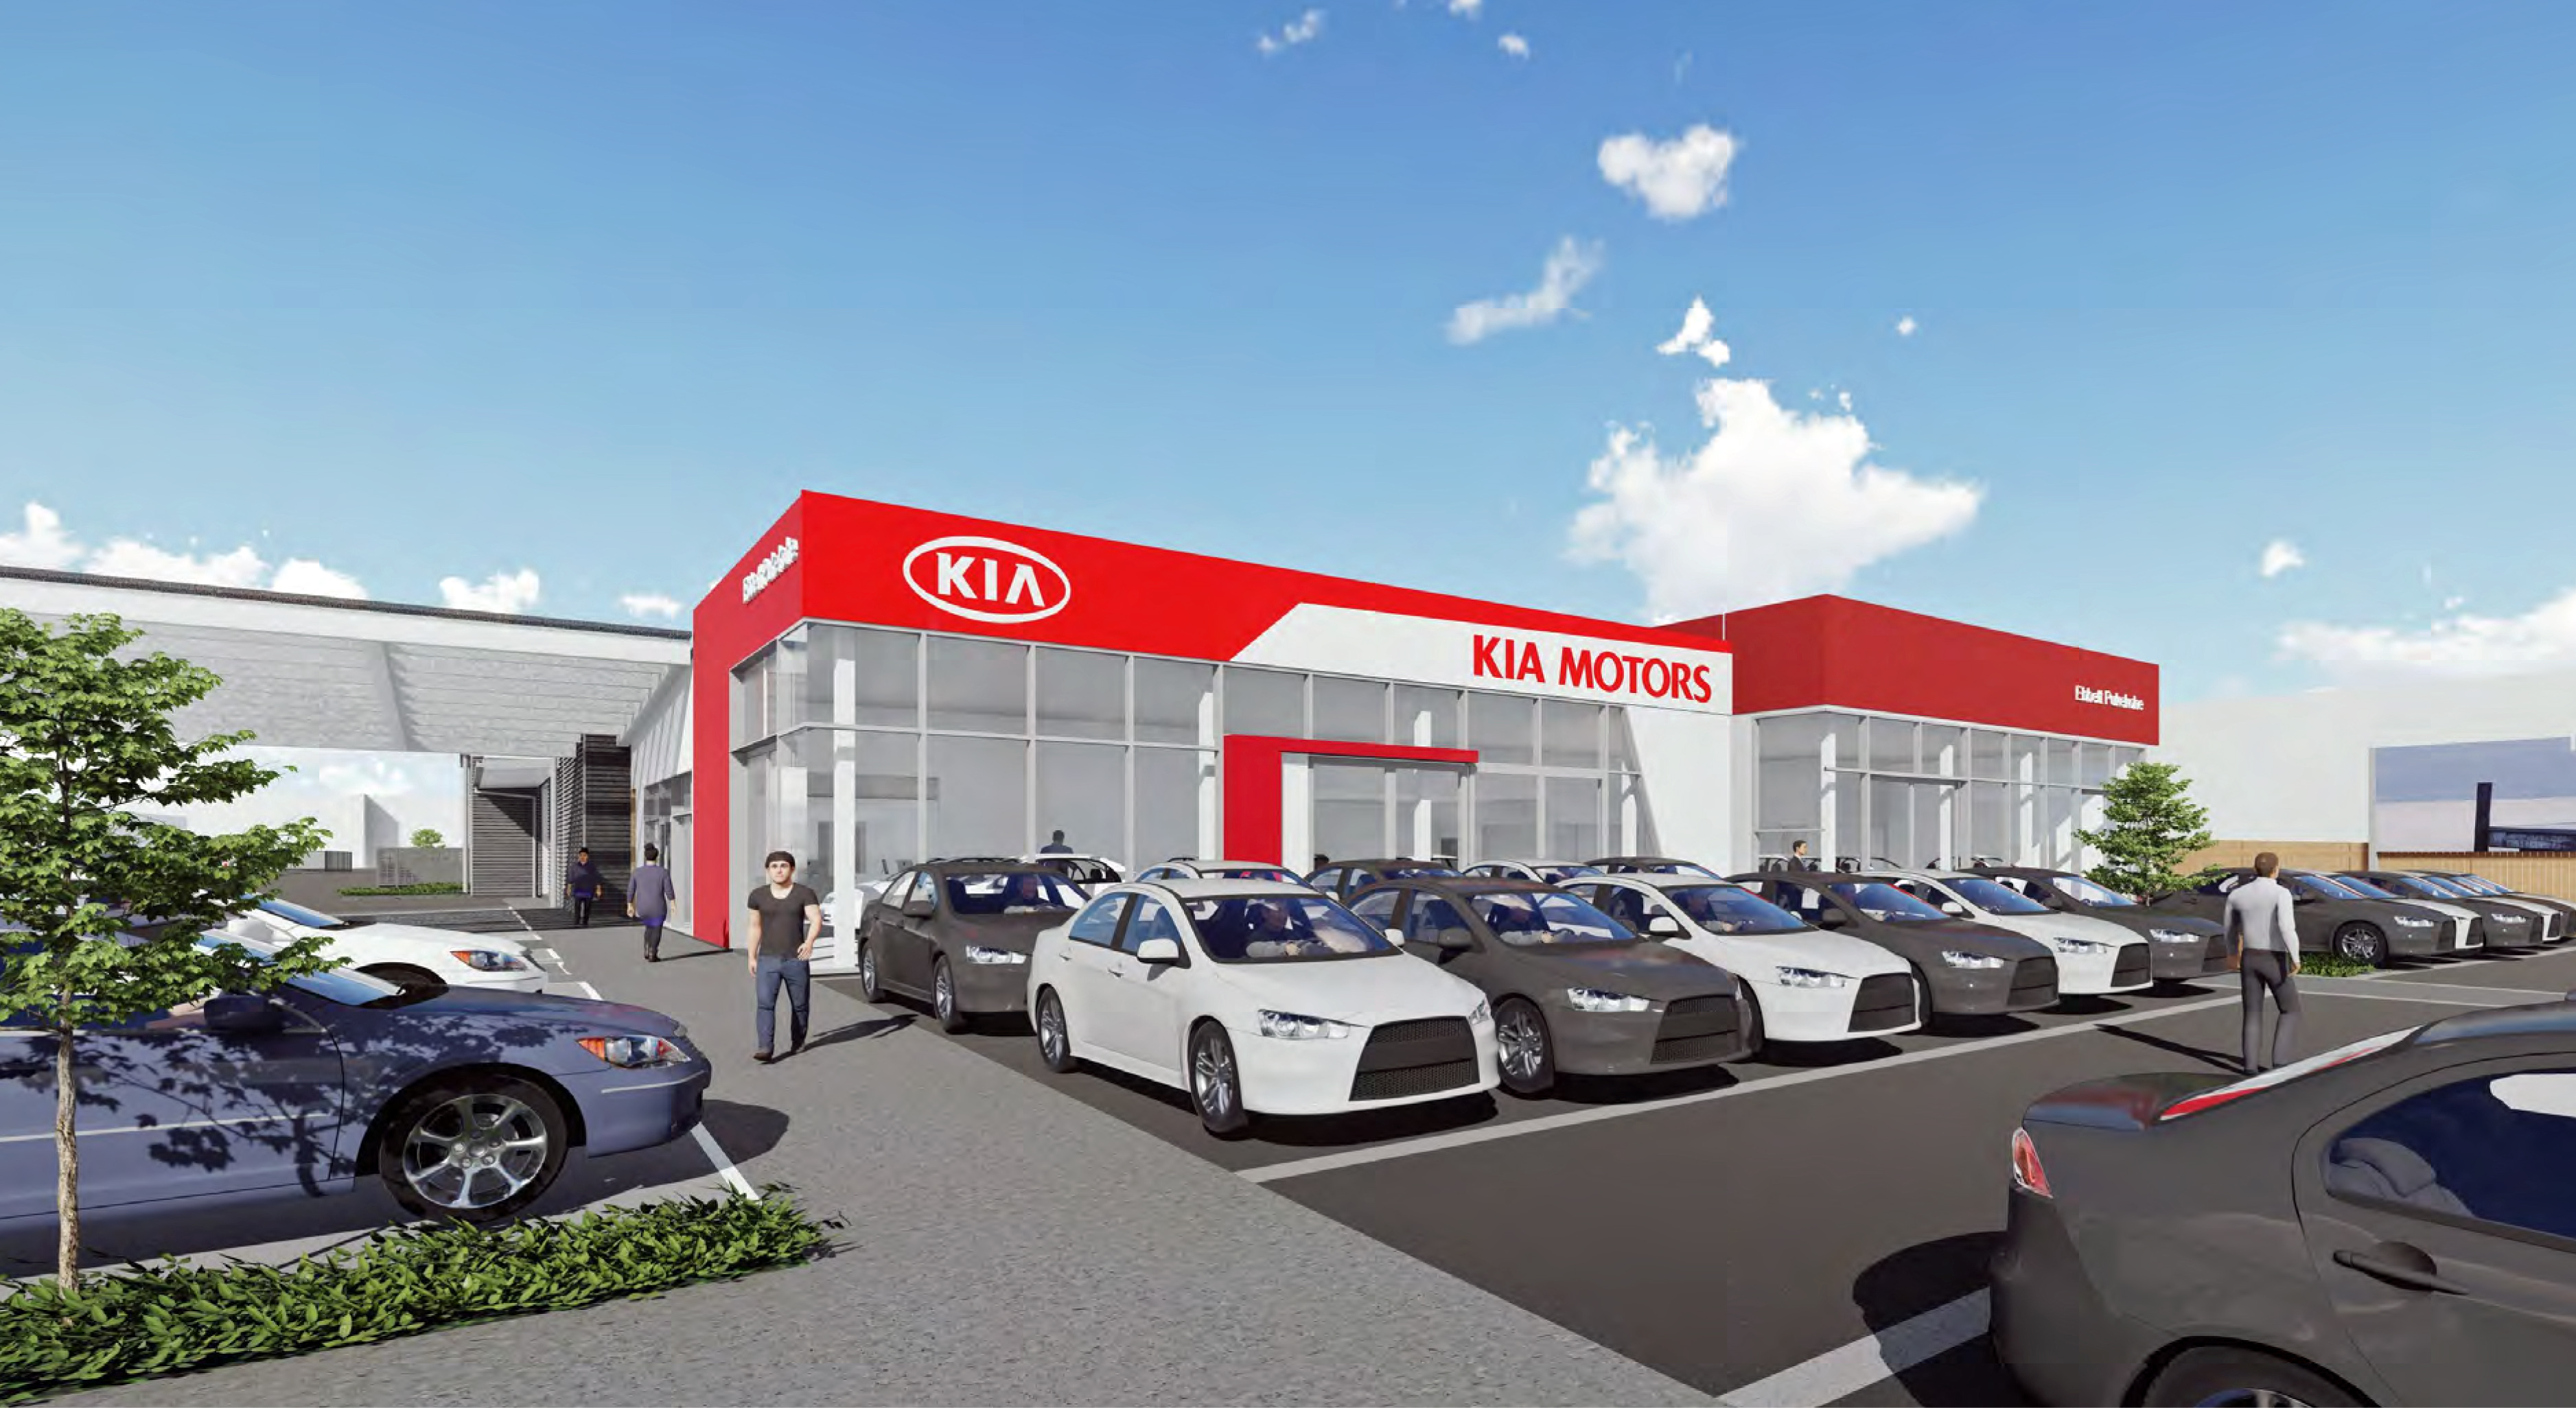 Kia moves to new home in Pukekohe